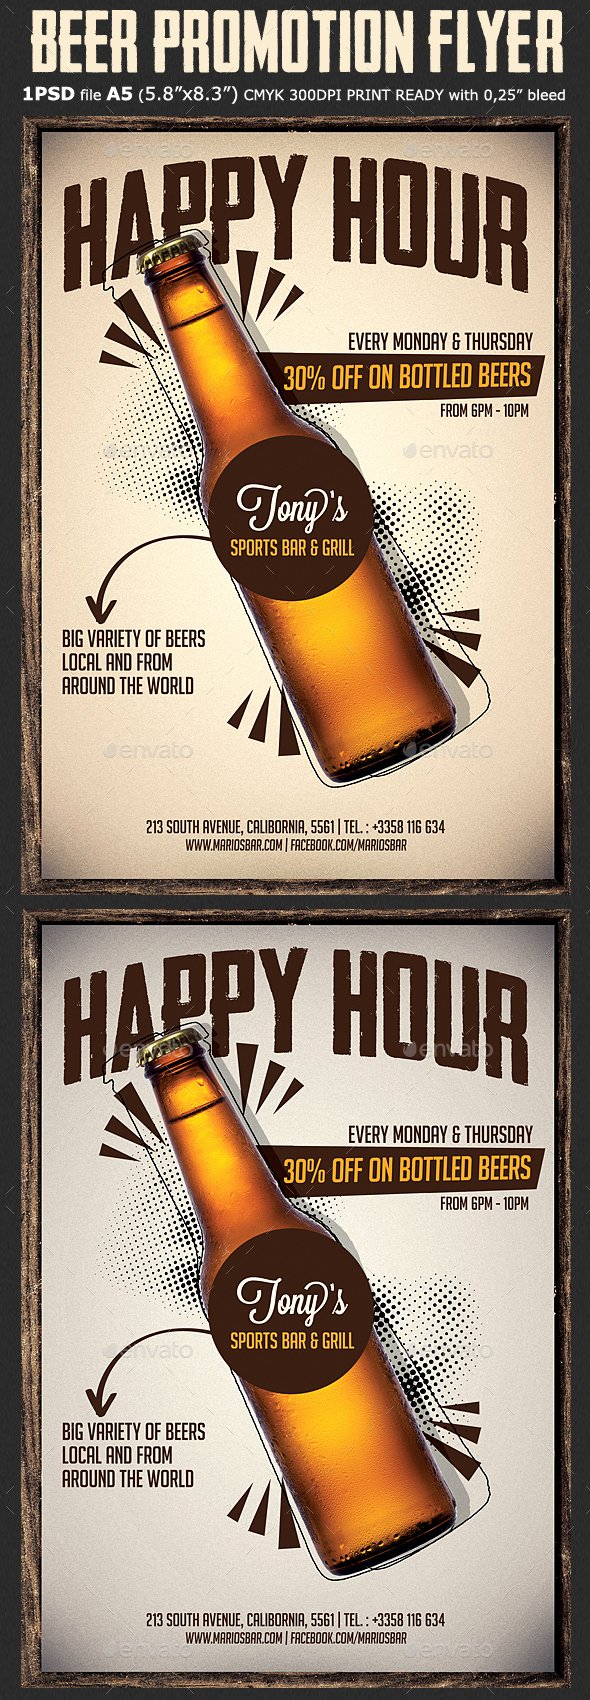 Happy Hour Flyer Template Fresh Beer Promotion Happy Hour Flyer by Hotpin